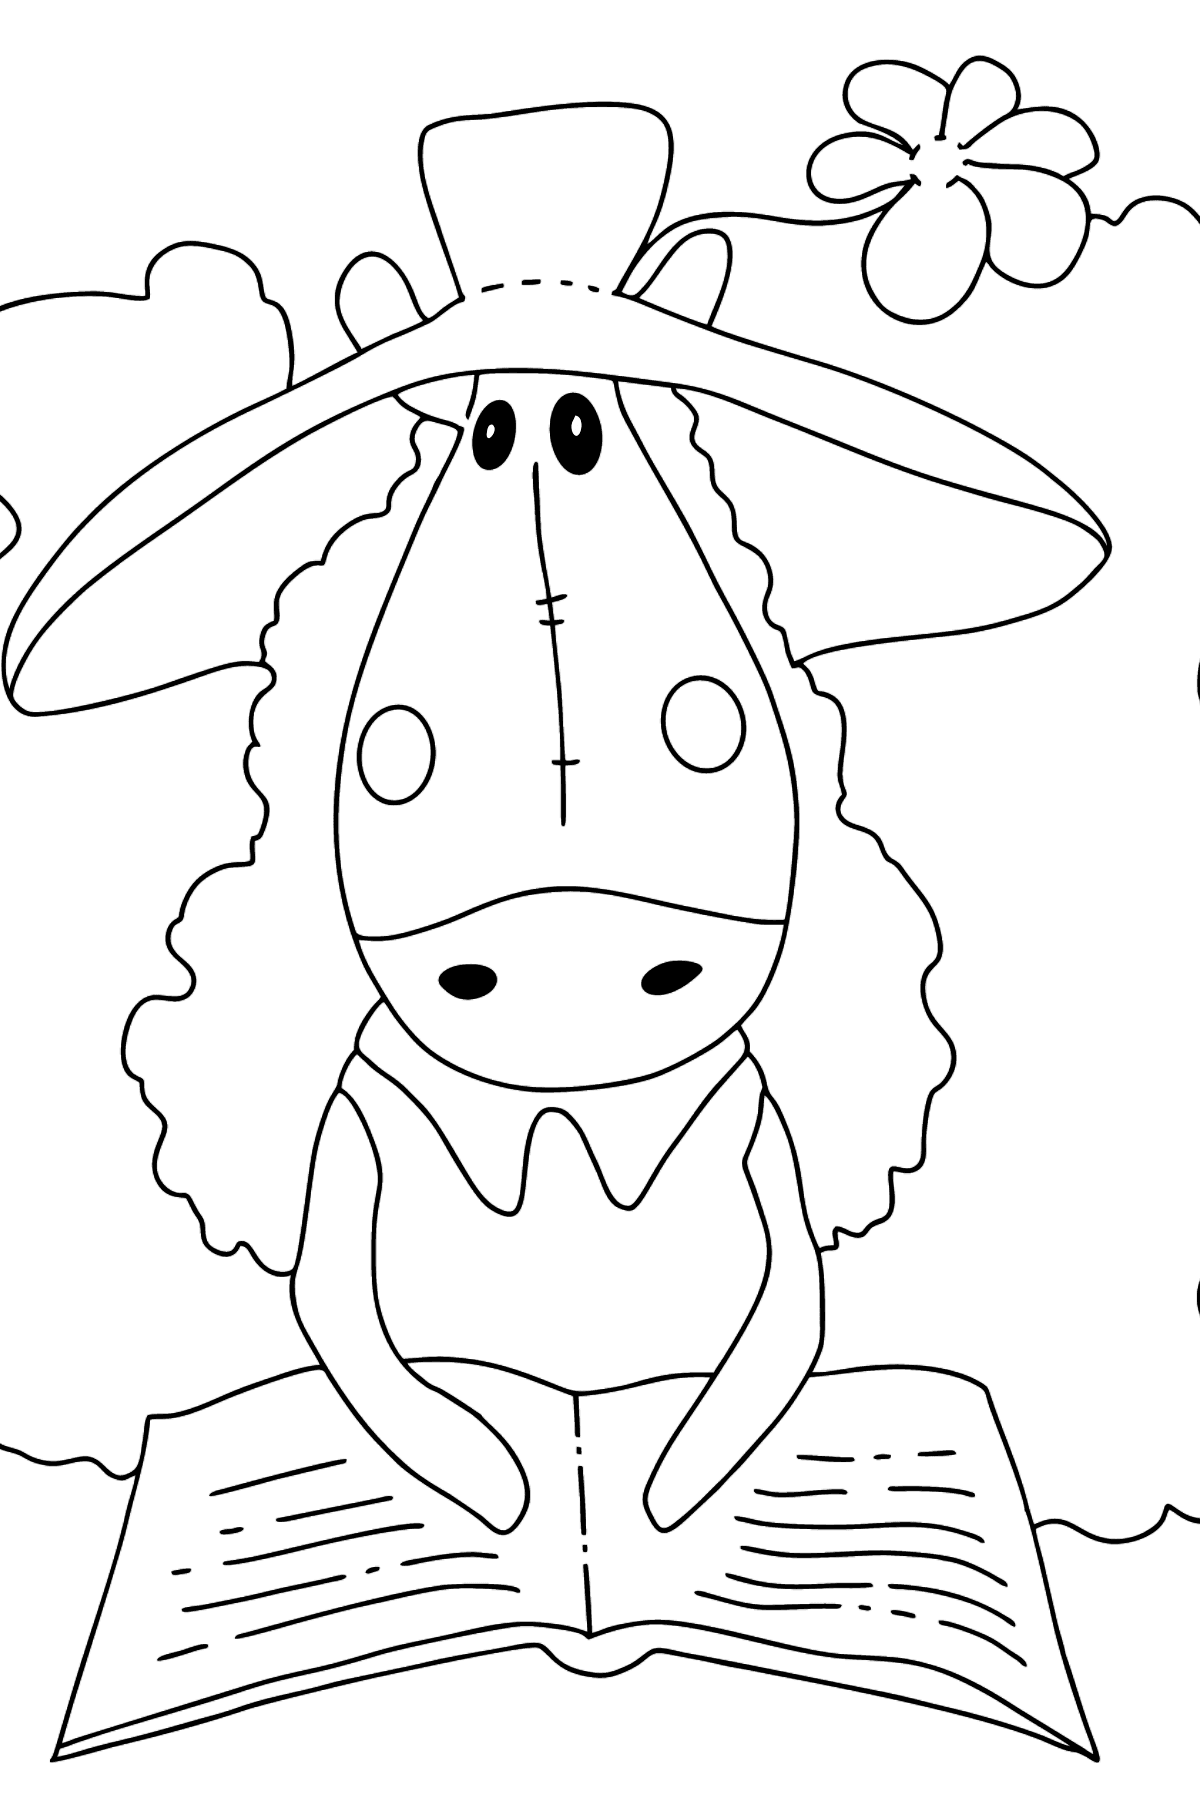 Coloring page a horse with book - Coloring Pages for Kids